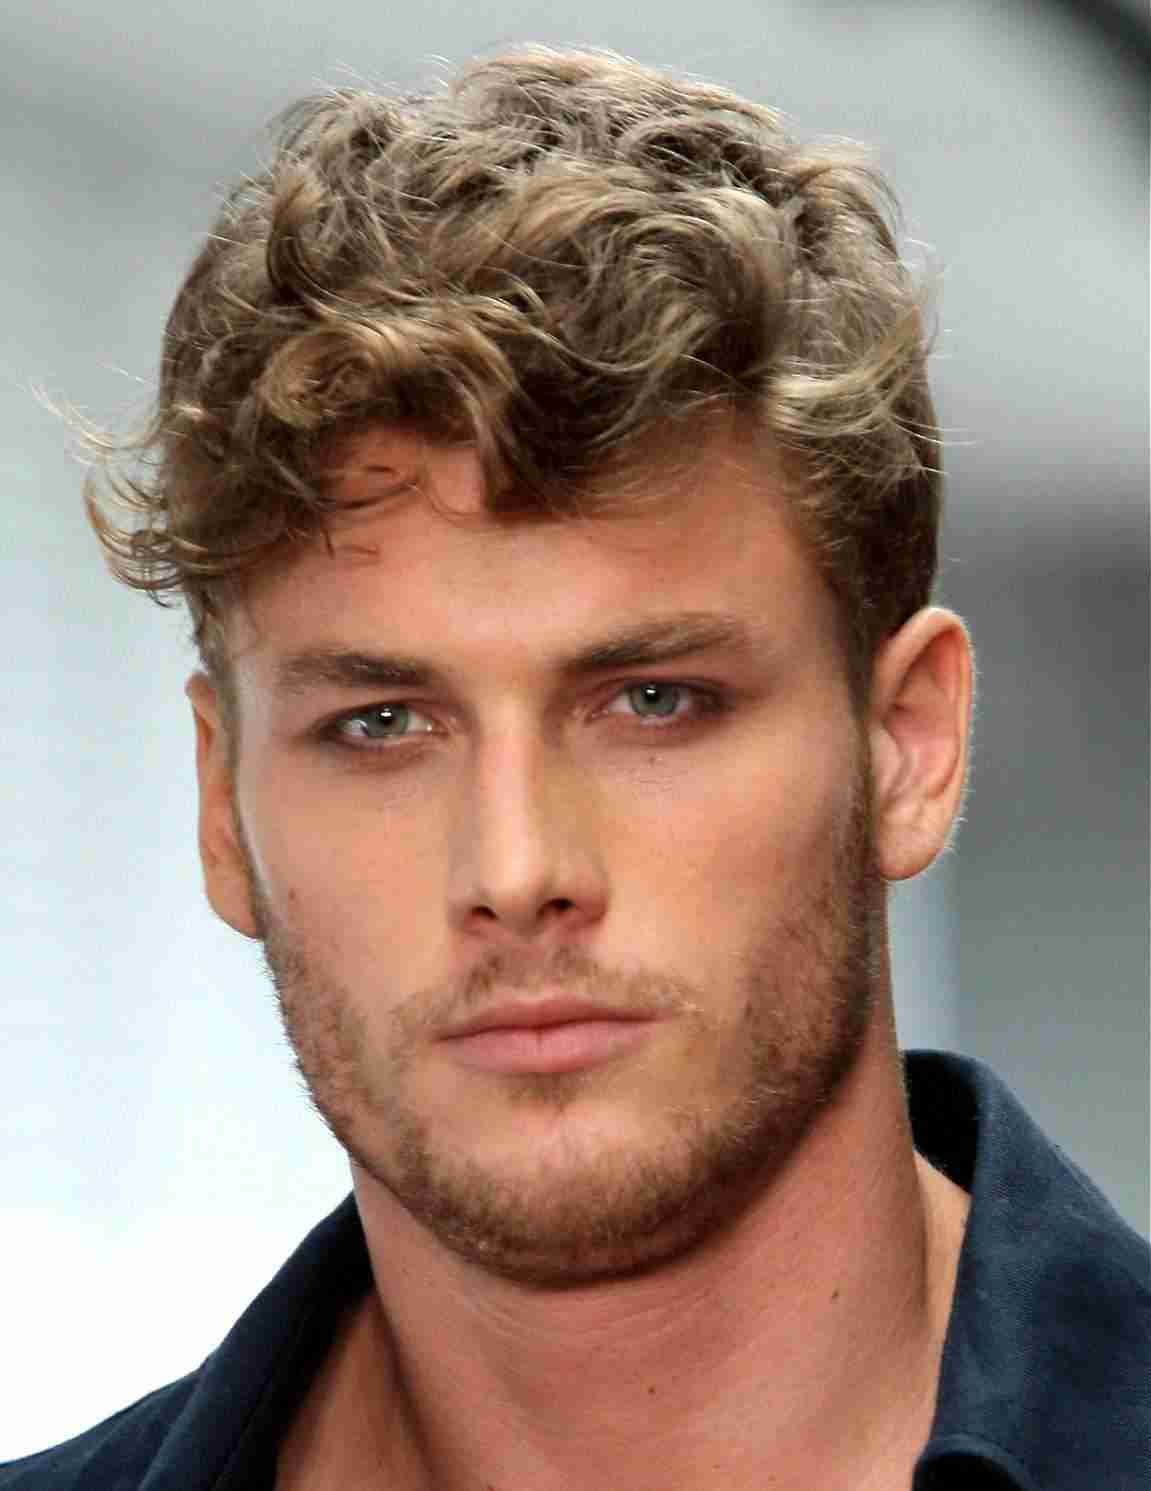 Trendy haircuts for guys